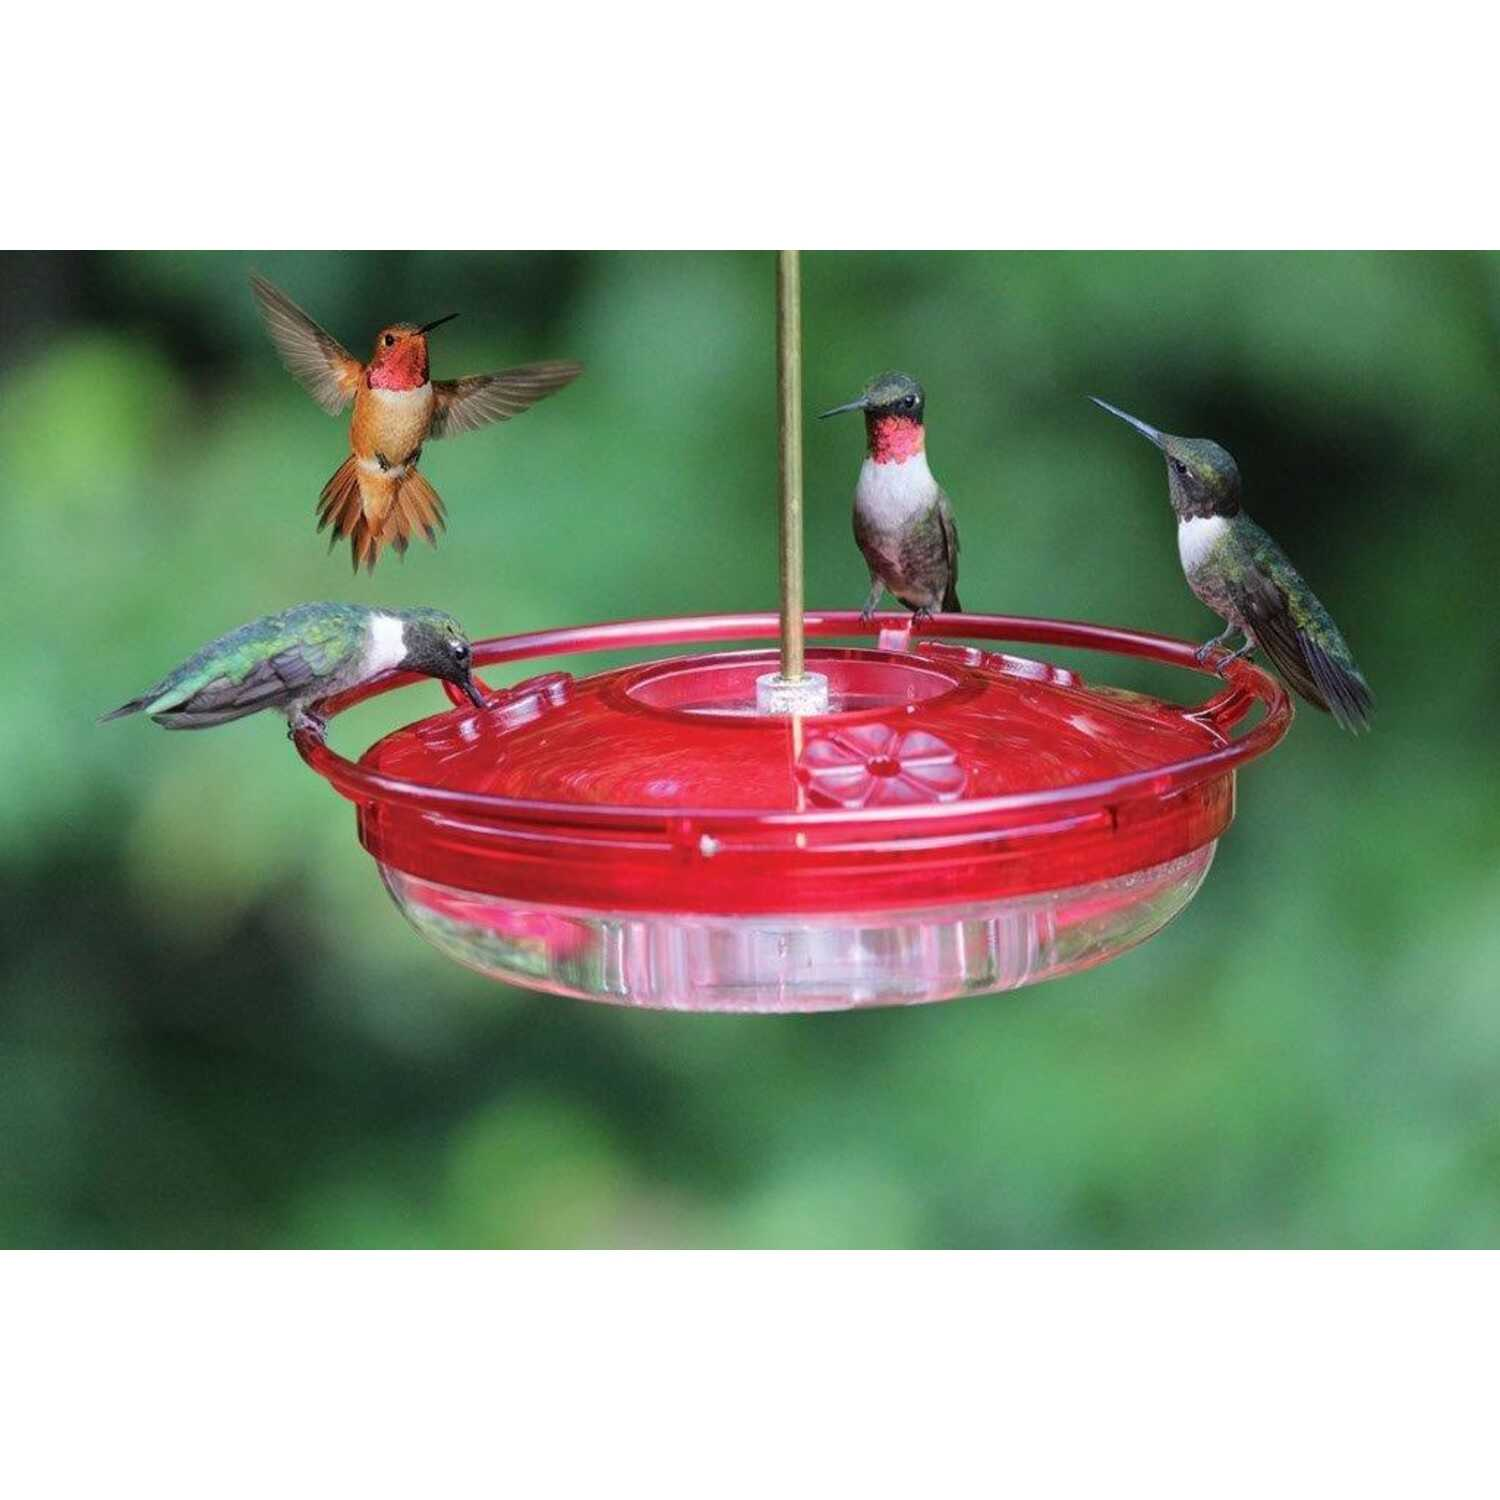 Cole's  Hummer High Rise  Hummingbird  8  Polycarbonate  Bird Feeder  3 ports